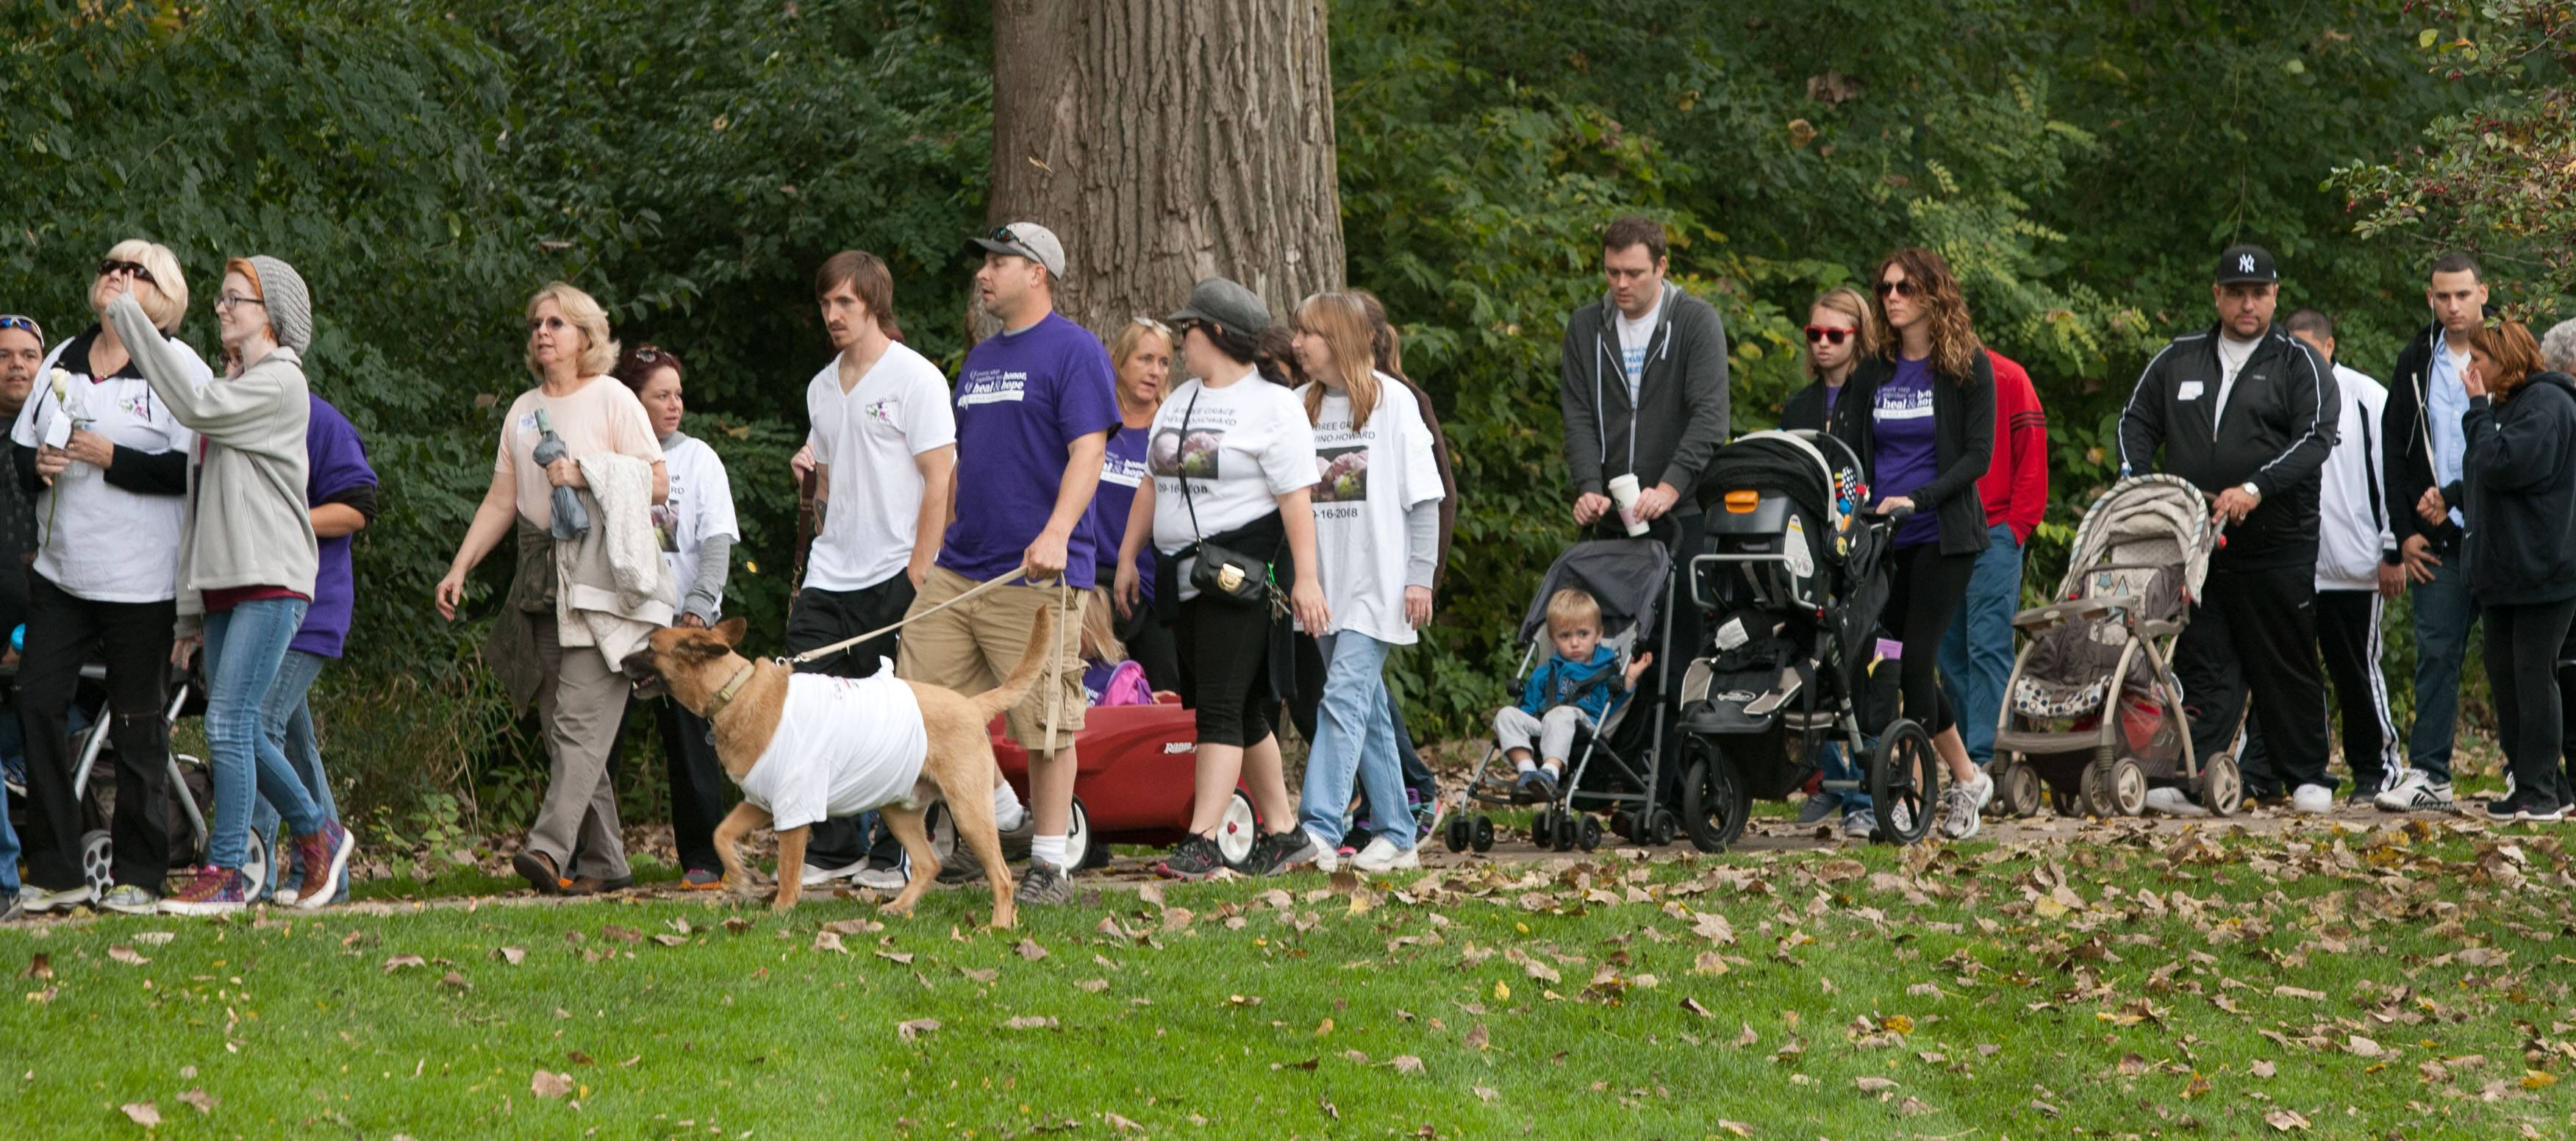 SHARE walk helps families remember babies